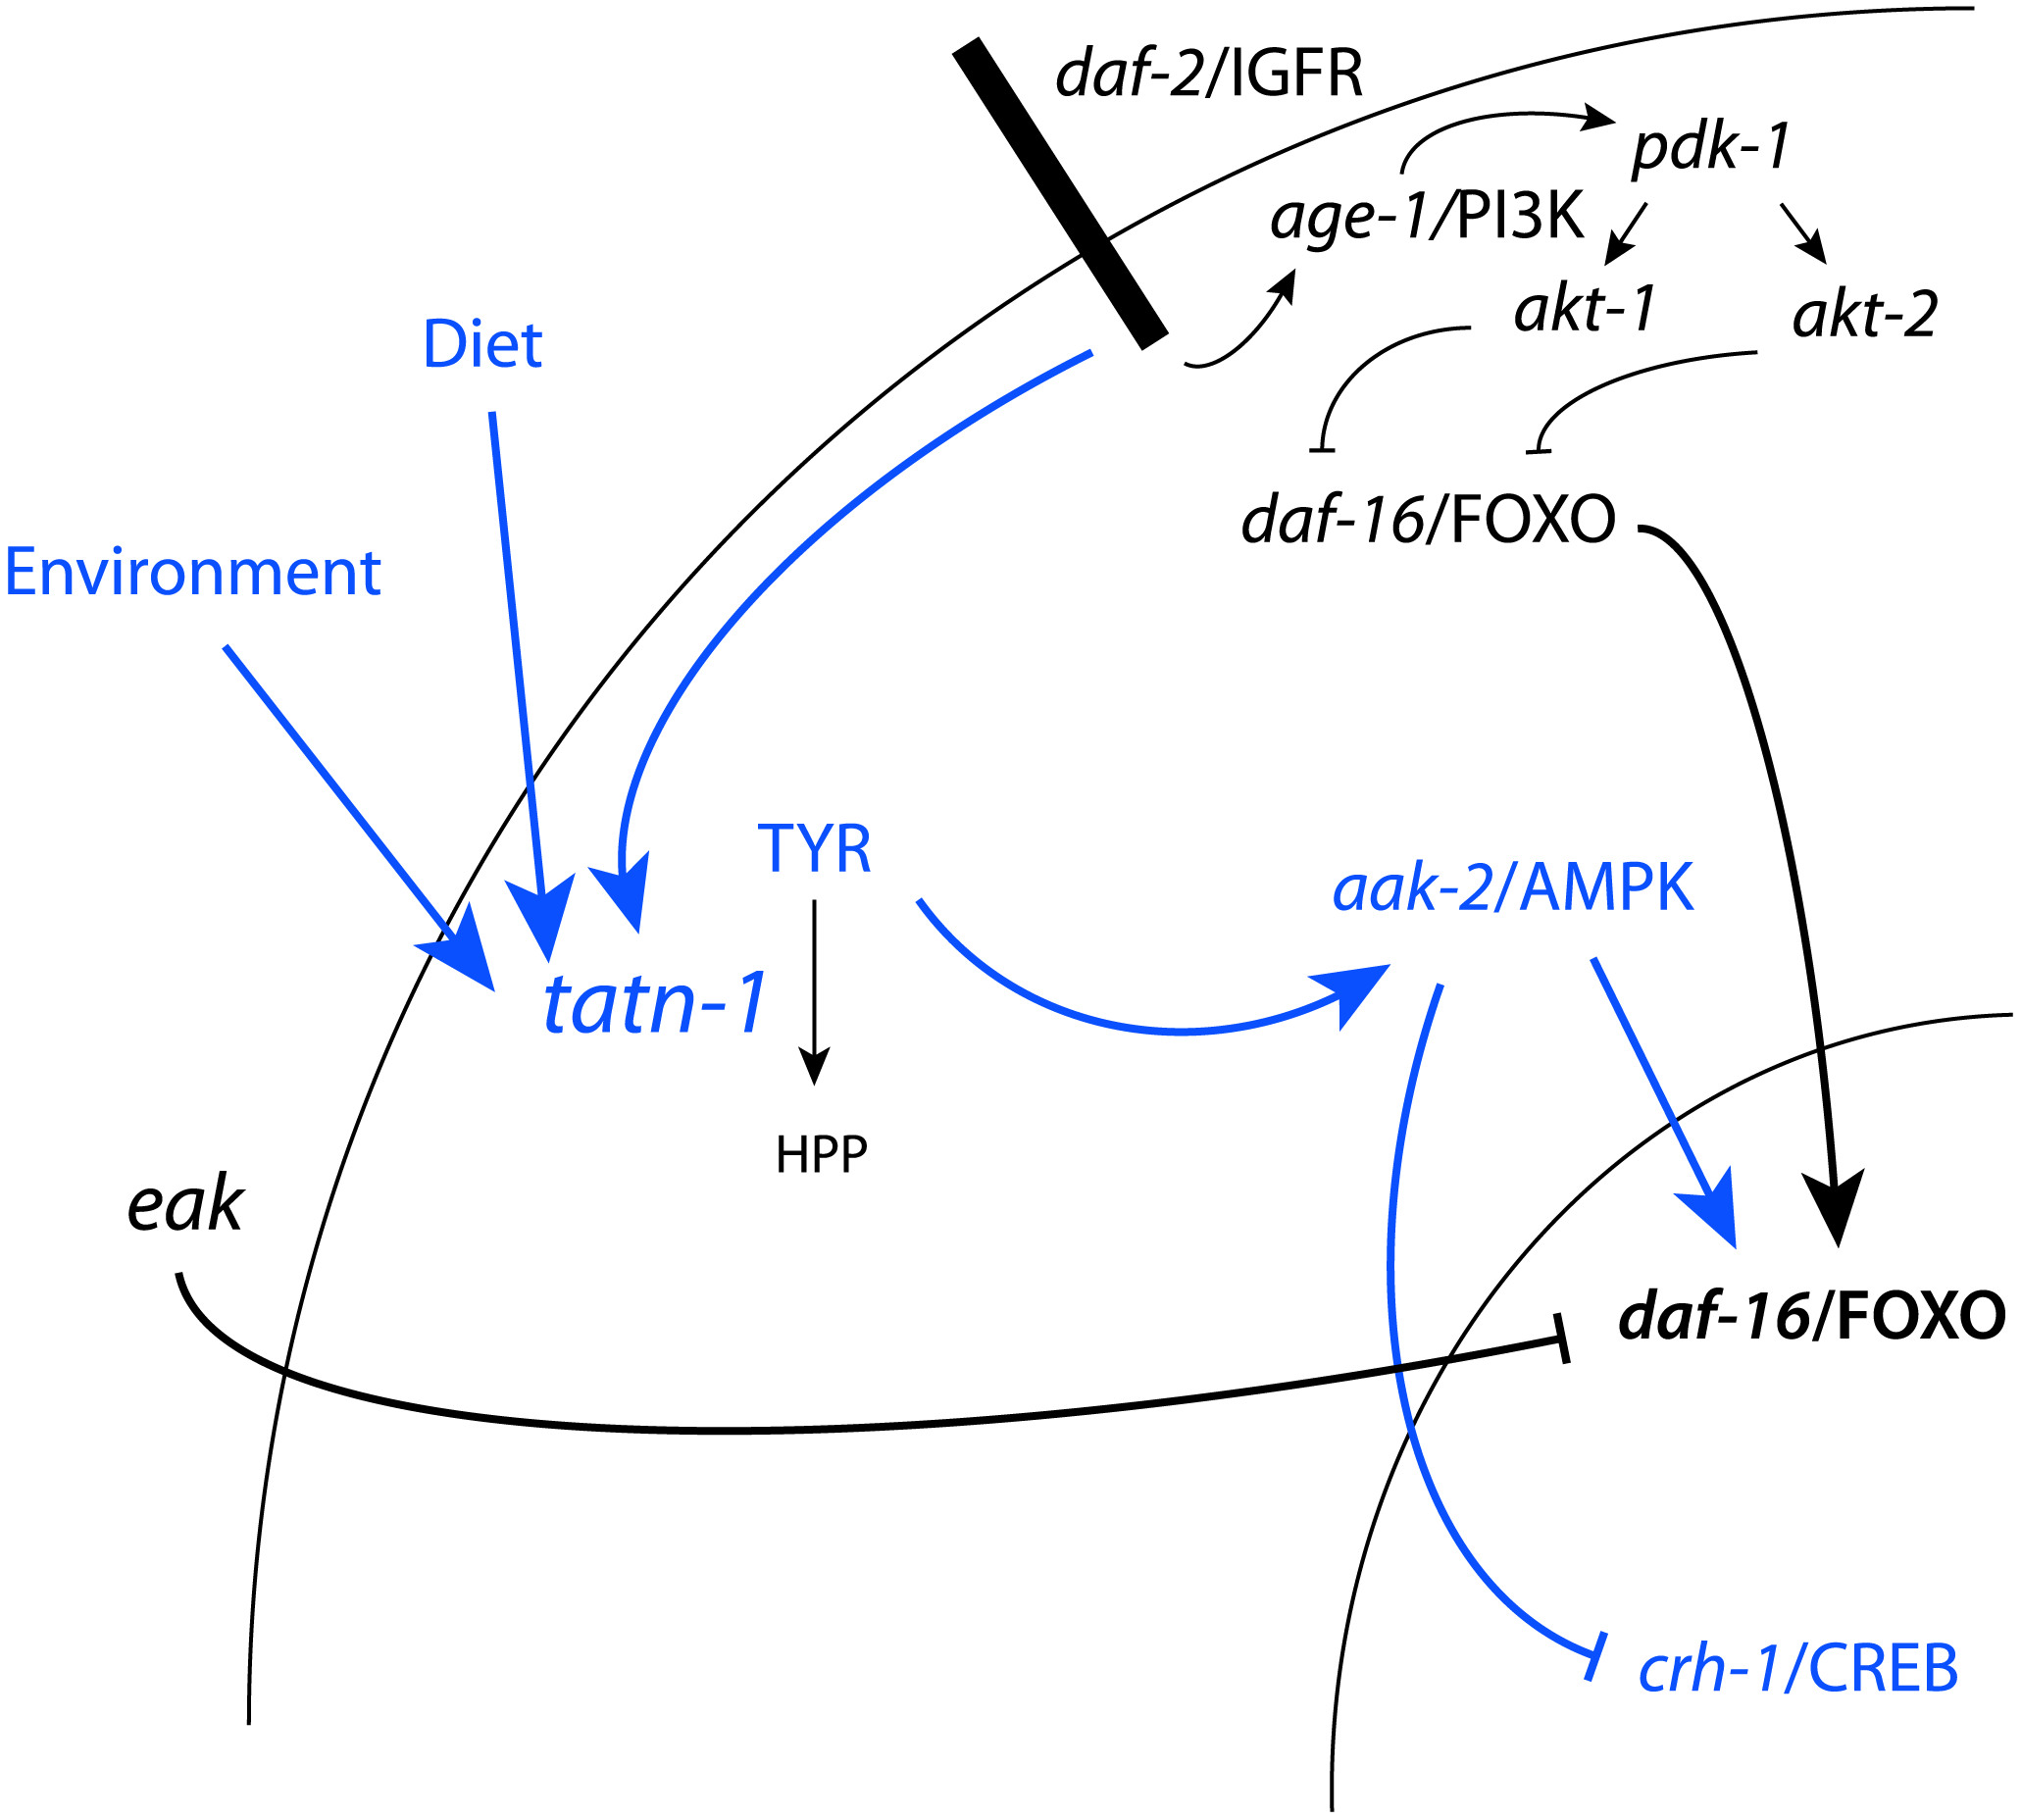 Model for the regulation of TATN-1 expression, tyrosine levels, and the resulting effects of tyrosine effects on cell signaling pathways.